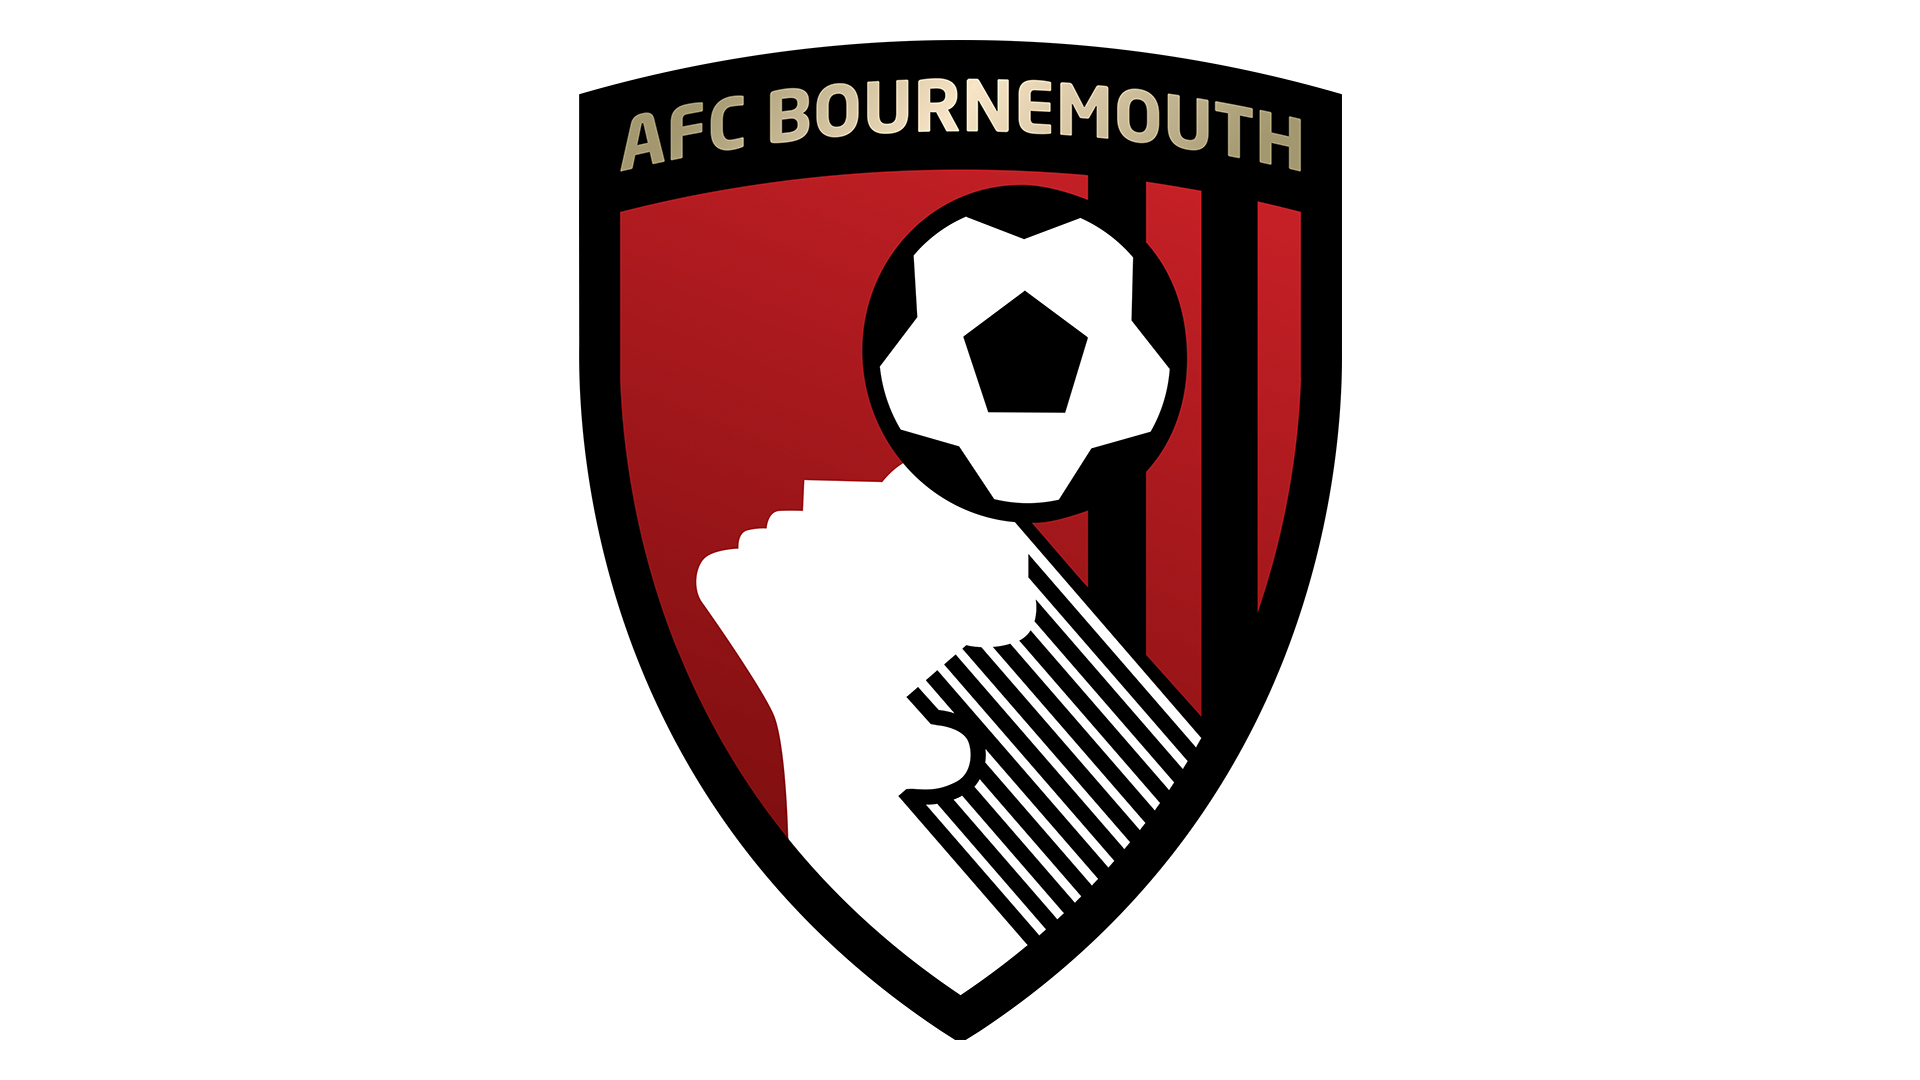 Meaning AFC Bournemouth logo and symbol.